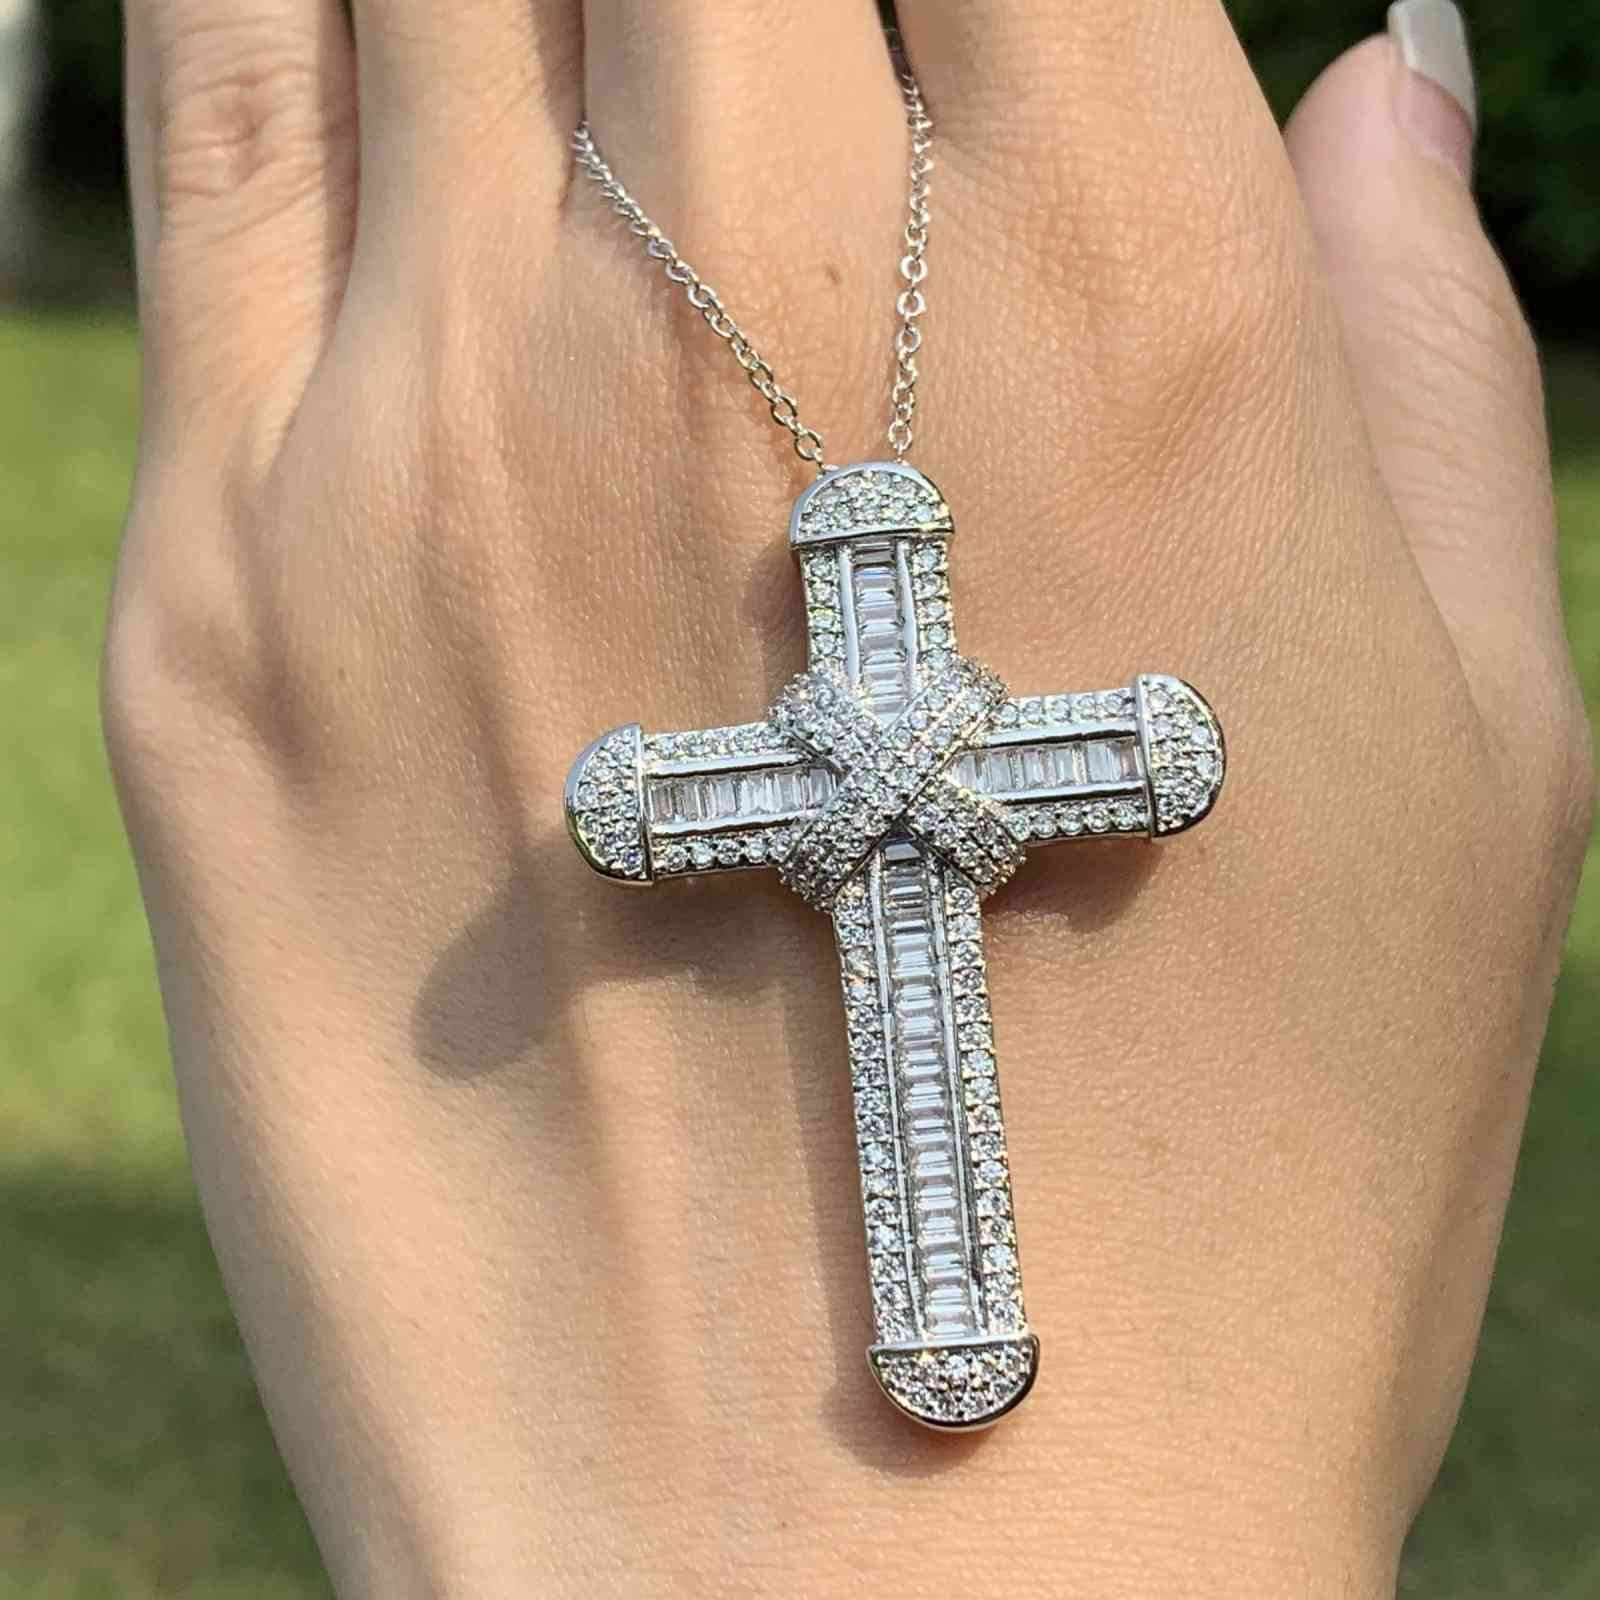 Victoria Wieck Luxury Jewelry Real 925 Sterling Silver Pave White Topaz CZ Diamond Gemstones Cross Pendant Lucky Women Necklace For Party